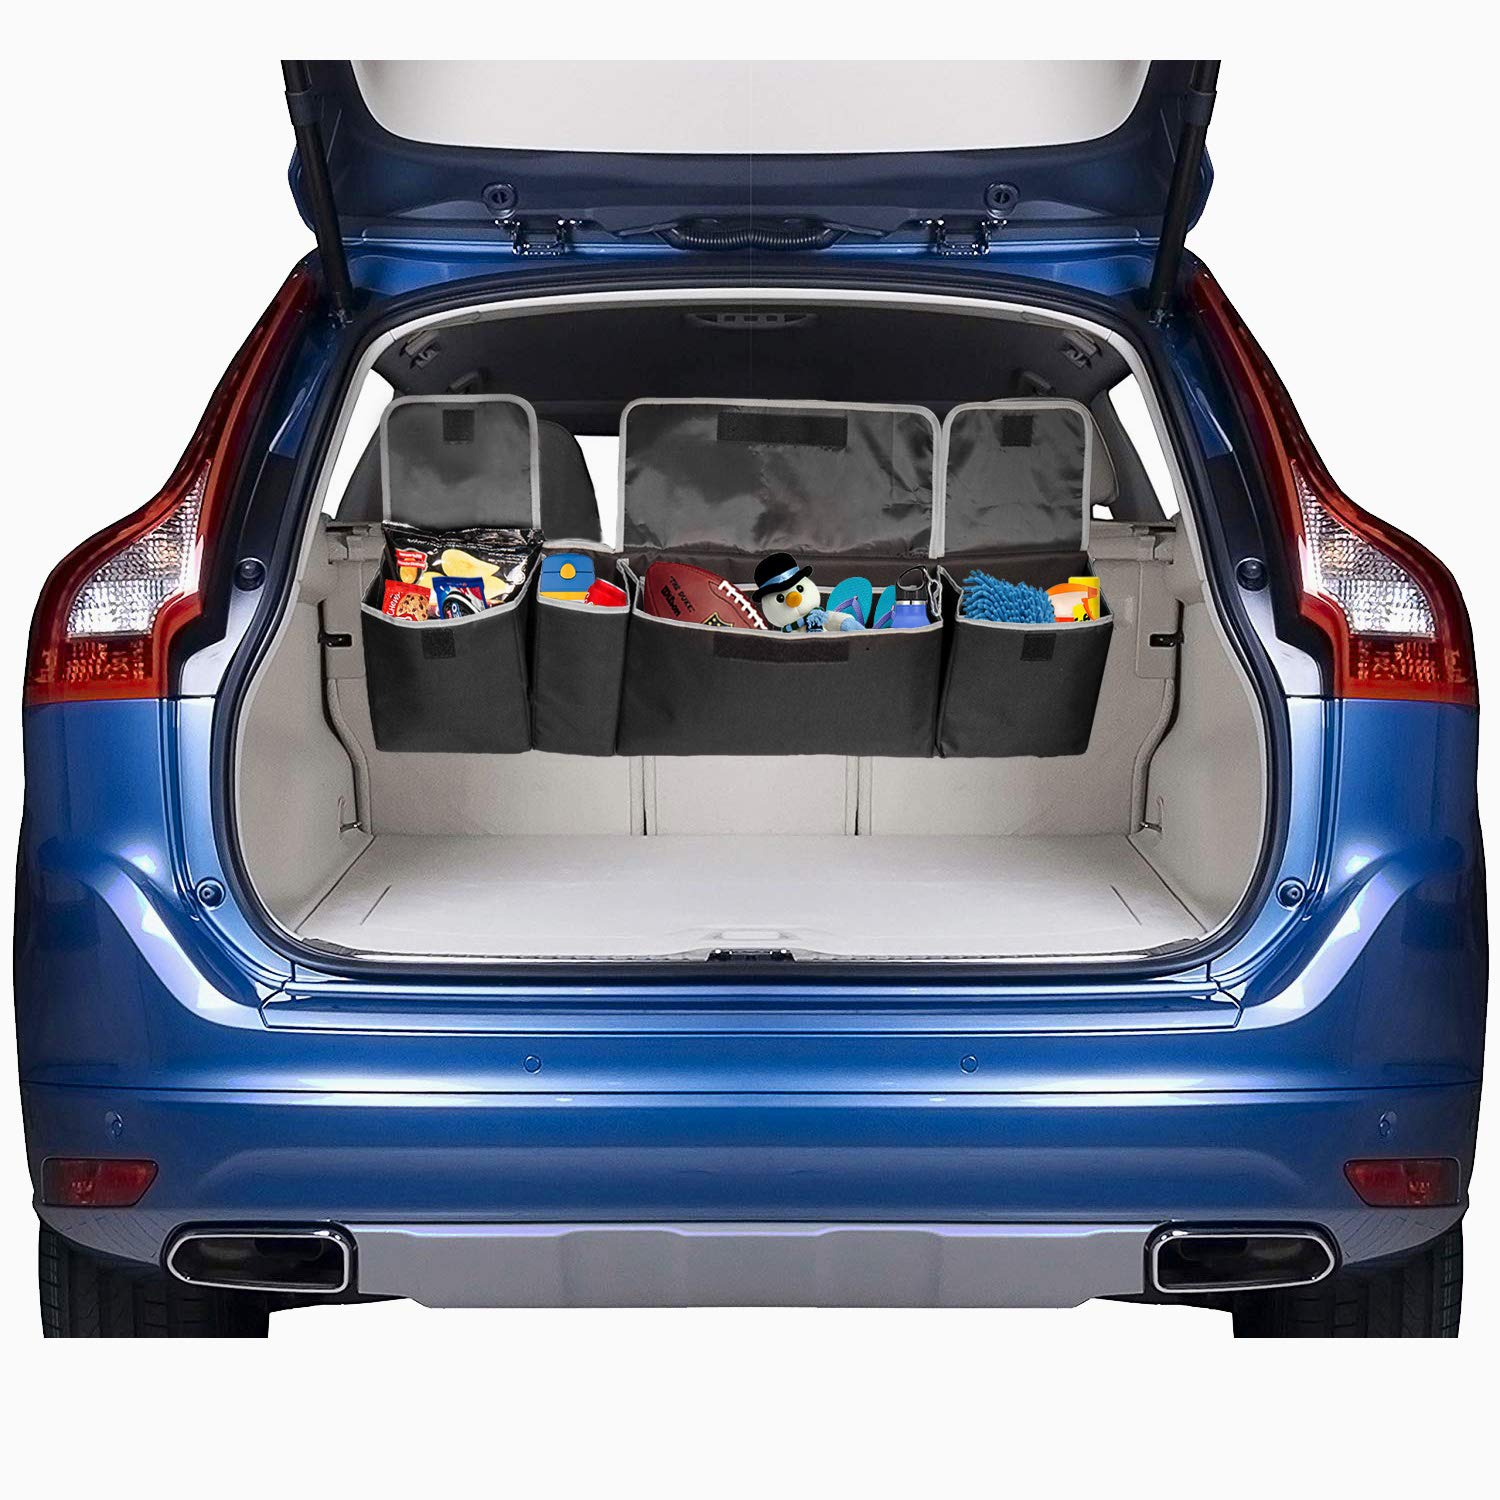 PIDO Backseat Trunk Organizer, Auto Hanging Seat Back Storage Organizer for SUV and Many Vehicles – Free Your Trunk Space by PIDO (Image #6)